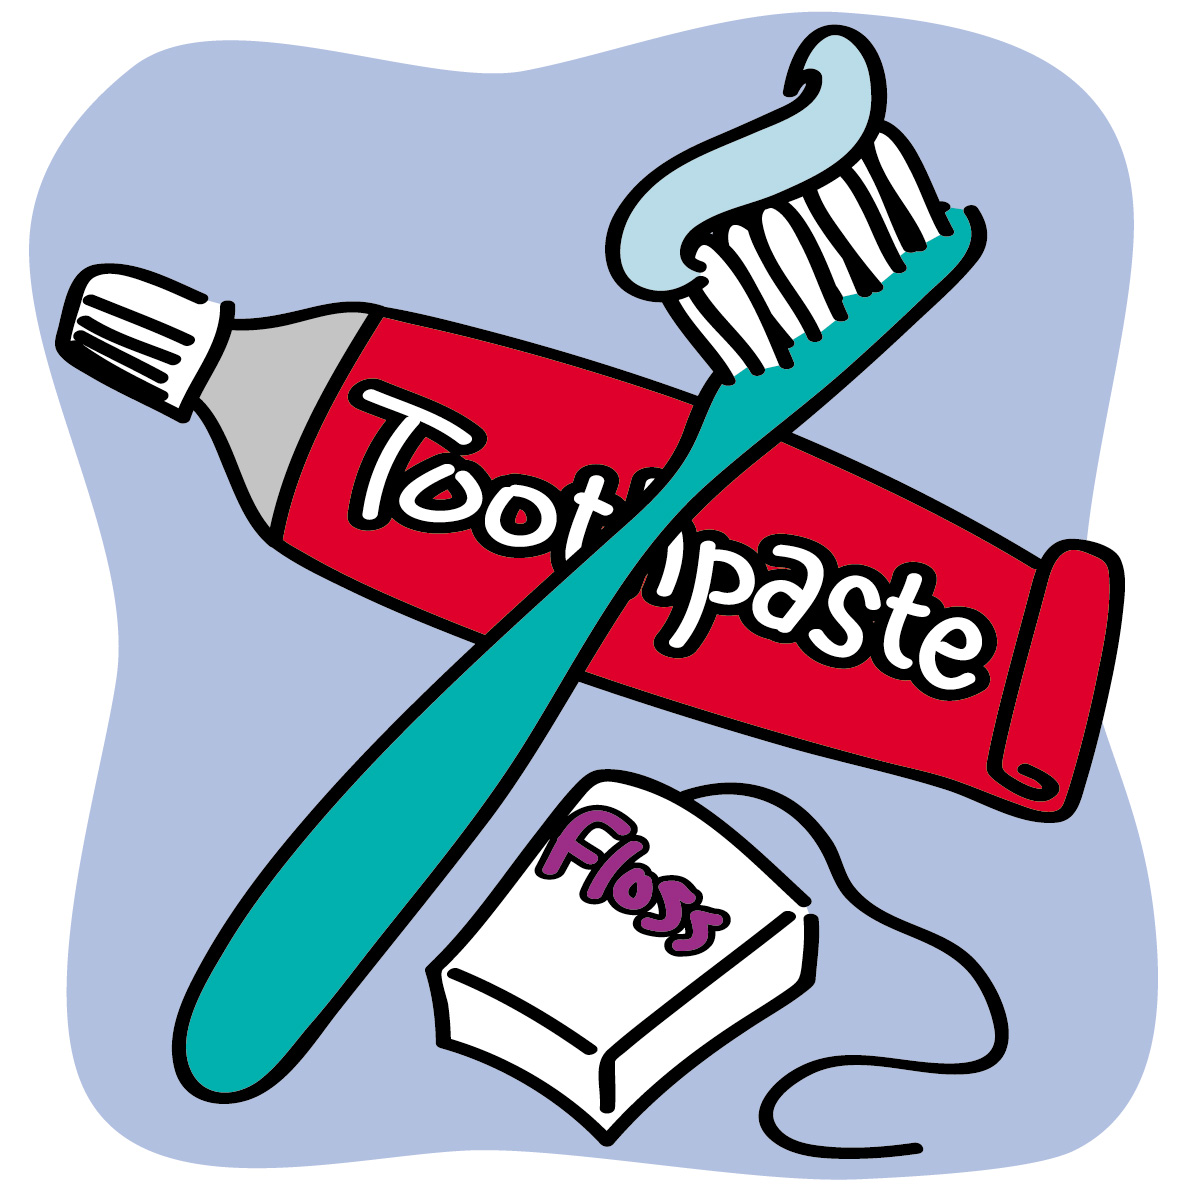 Dental Health Clipart - Clipart Kid